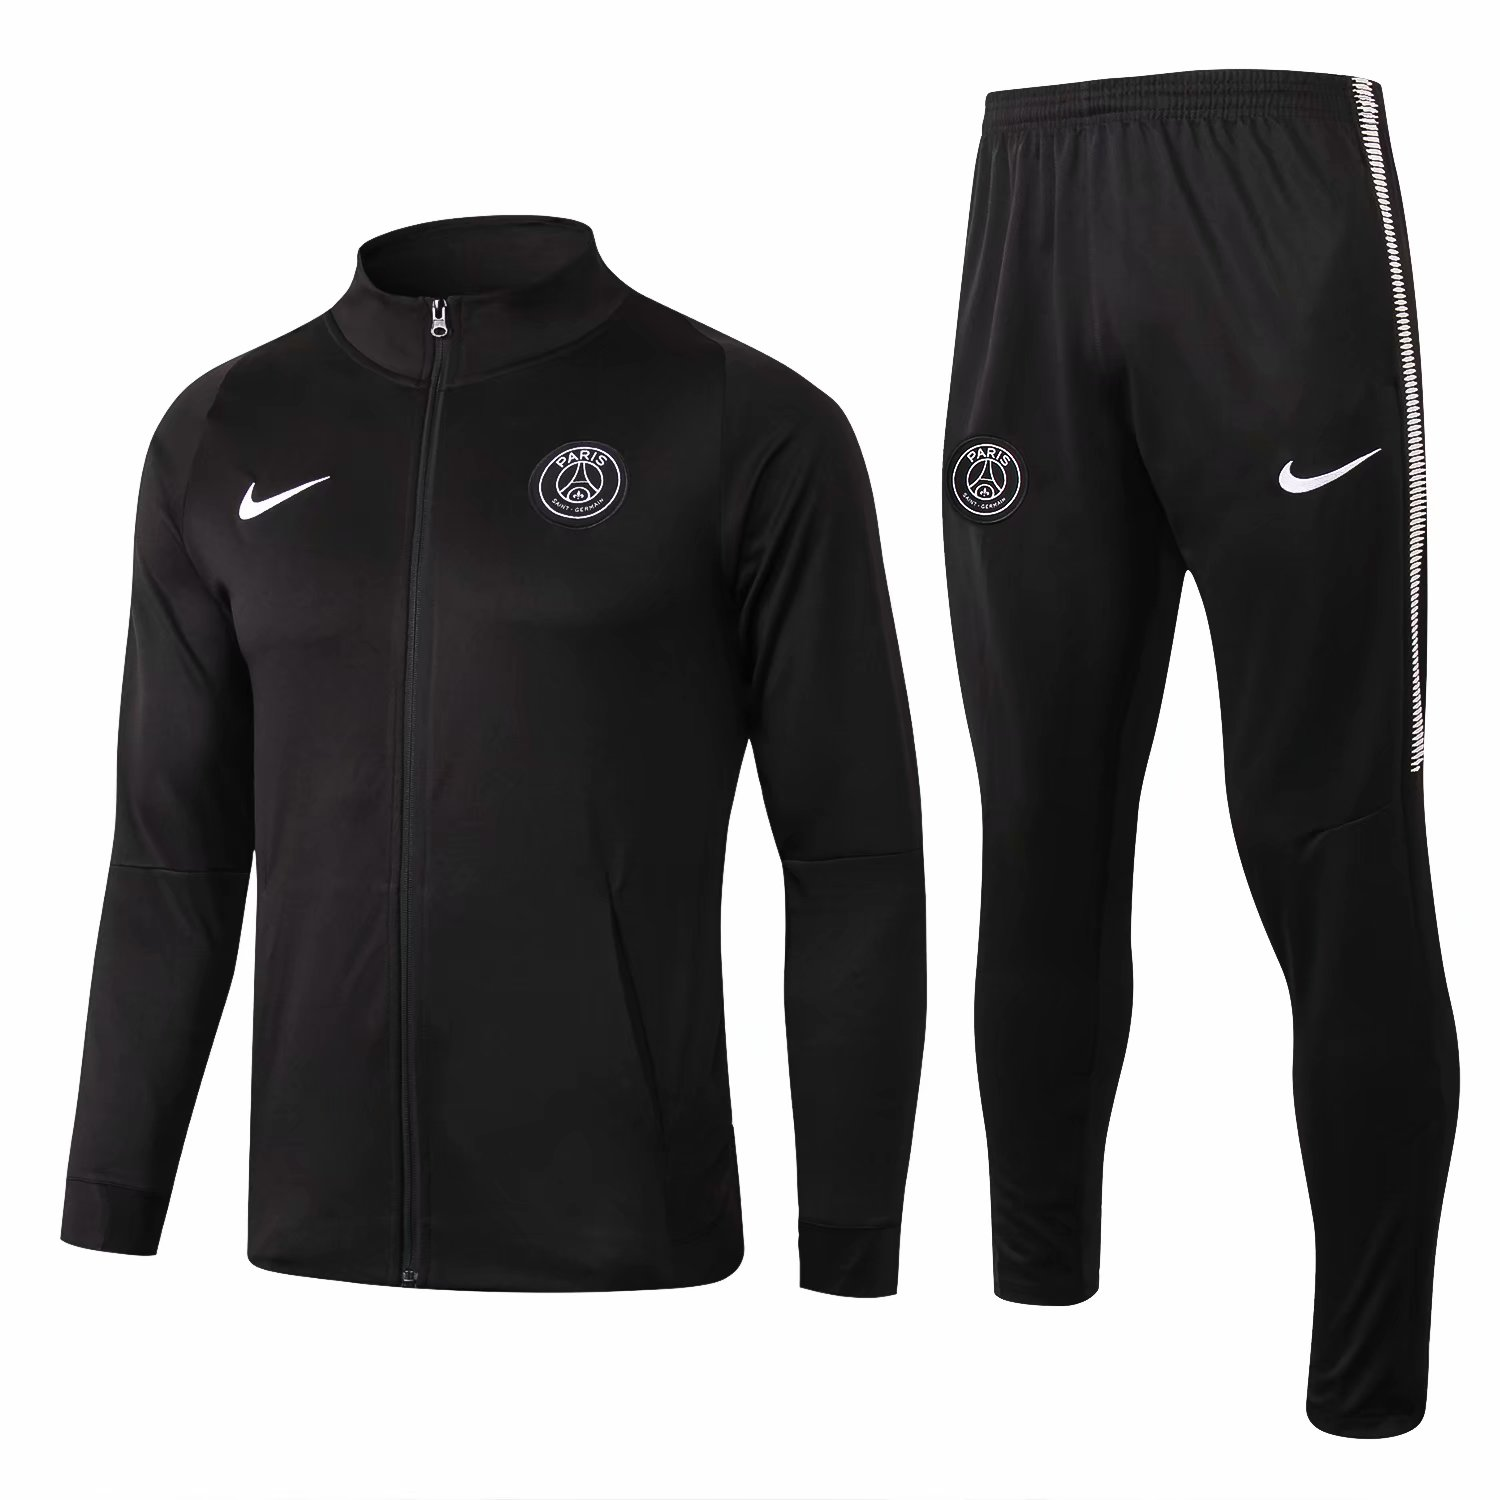 PSG Training Suit 2017-18 Black High Neck Jacket + Pants